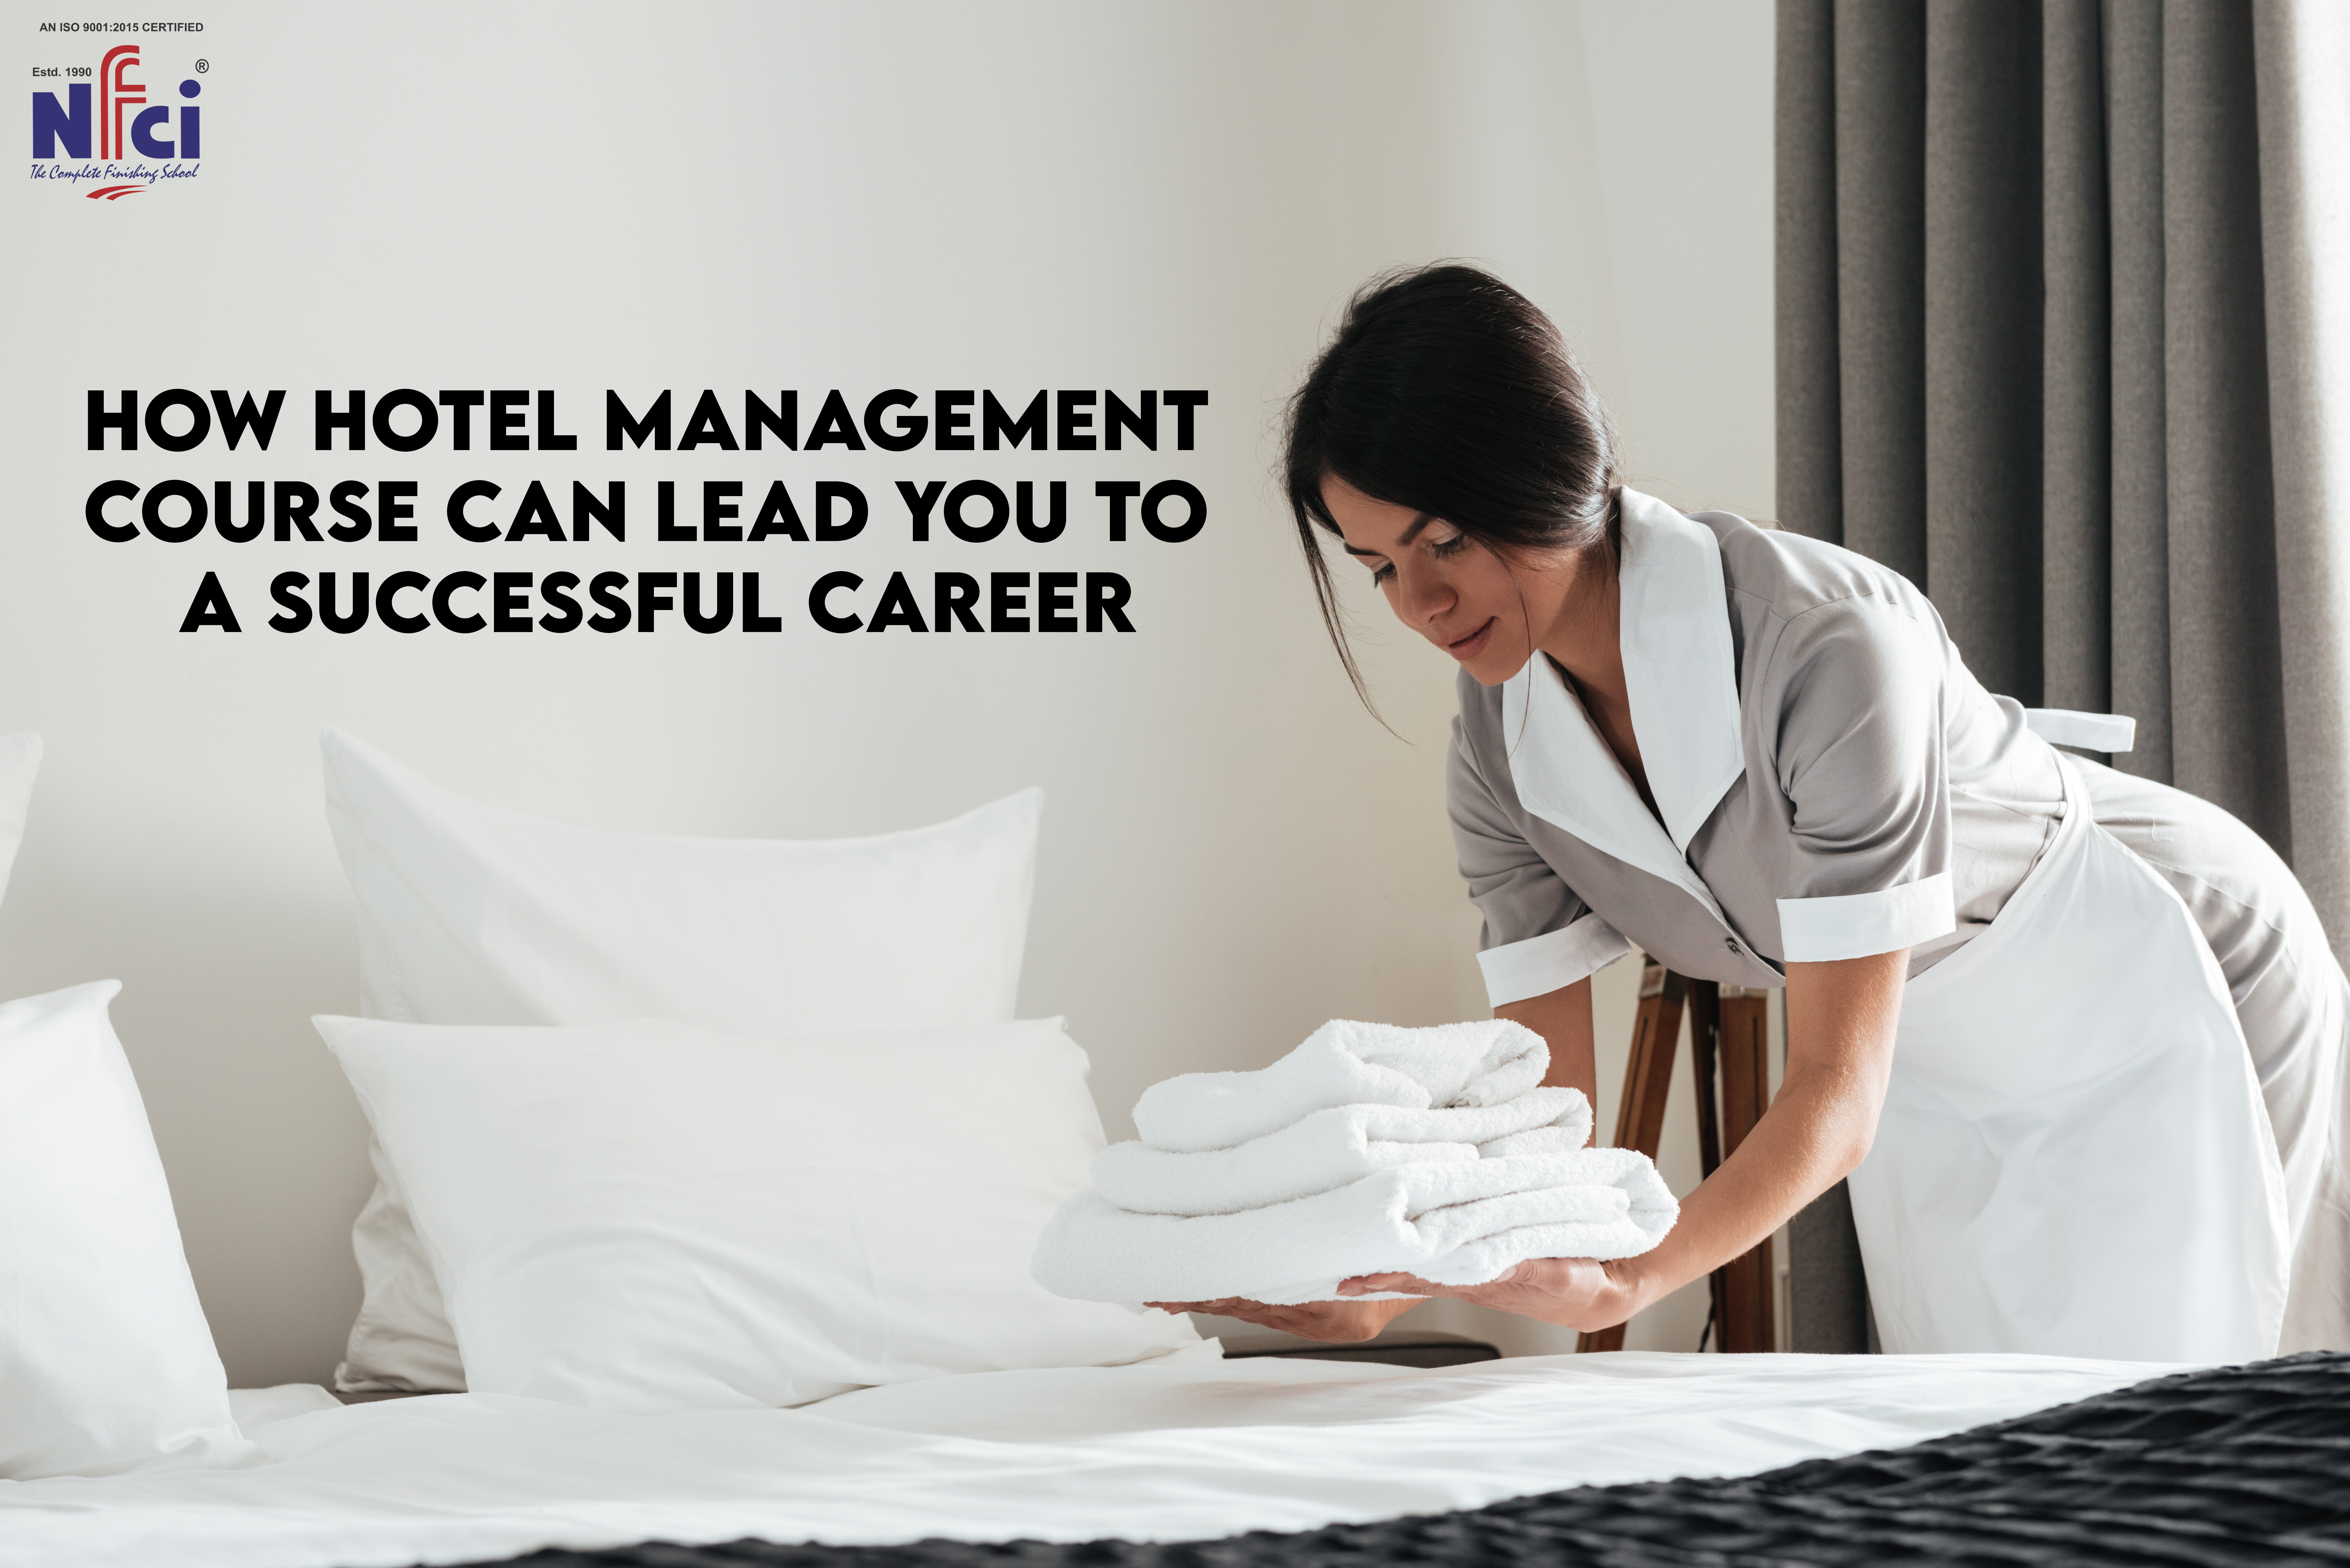 hotel management course career